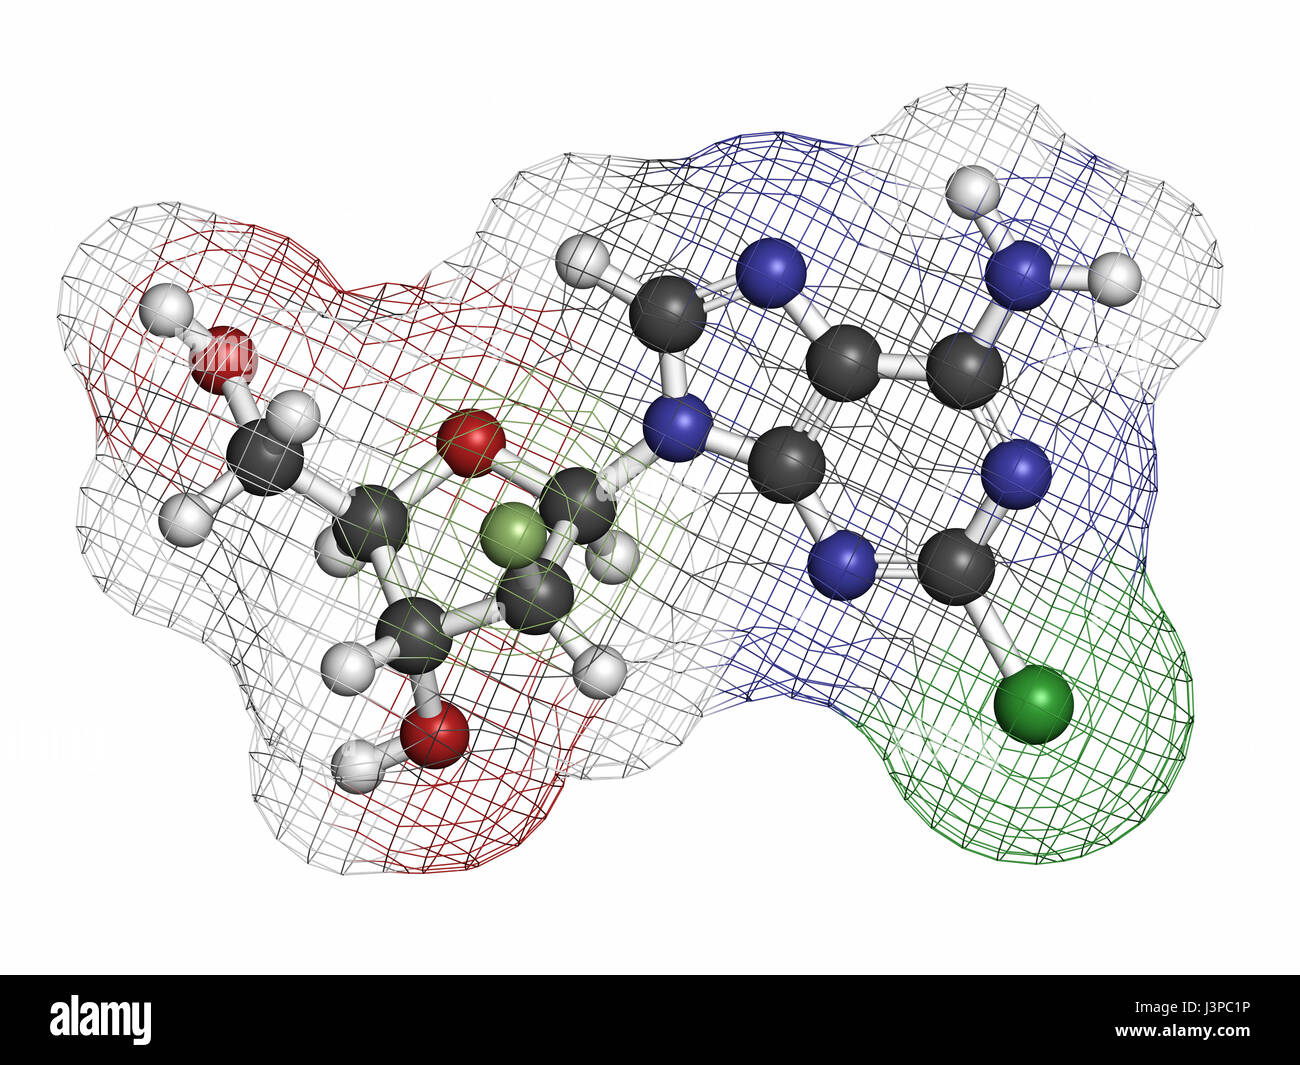 Clofarabine cancer drug molecule (purine nucleoside antimetabolite). Atoms are represented as spheres with conventional - Stock Image